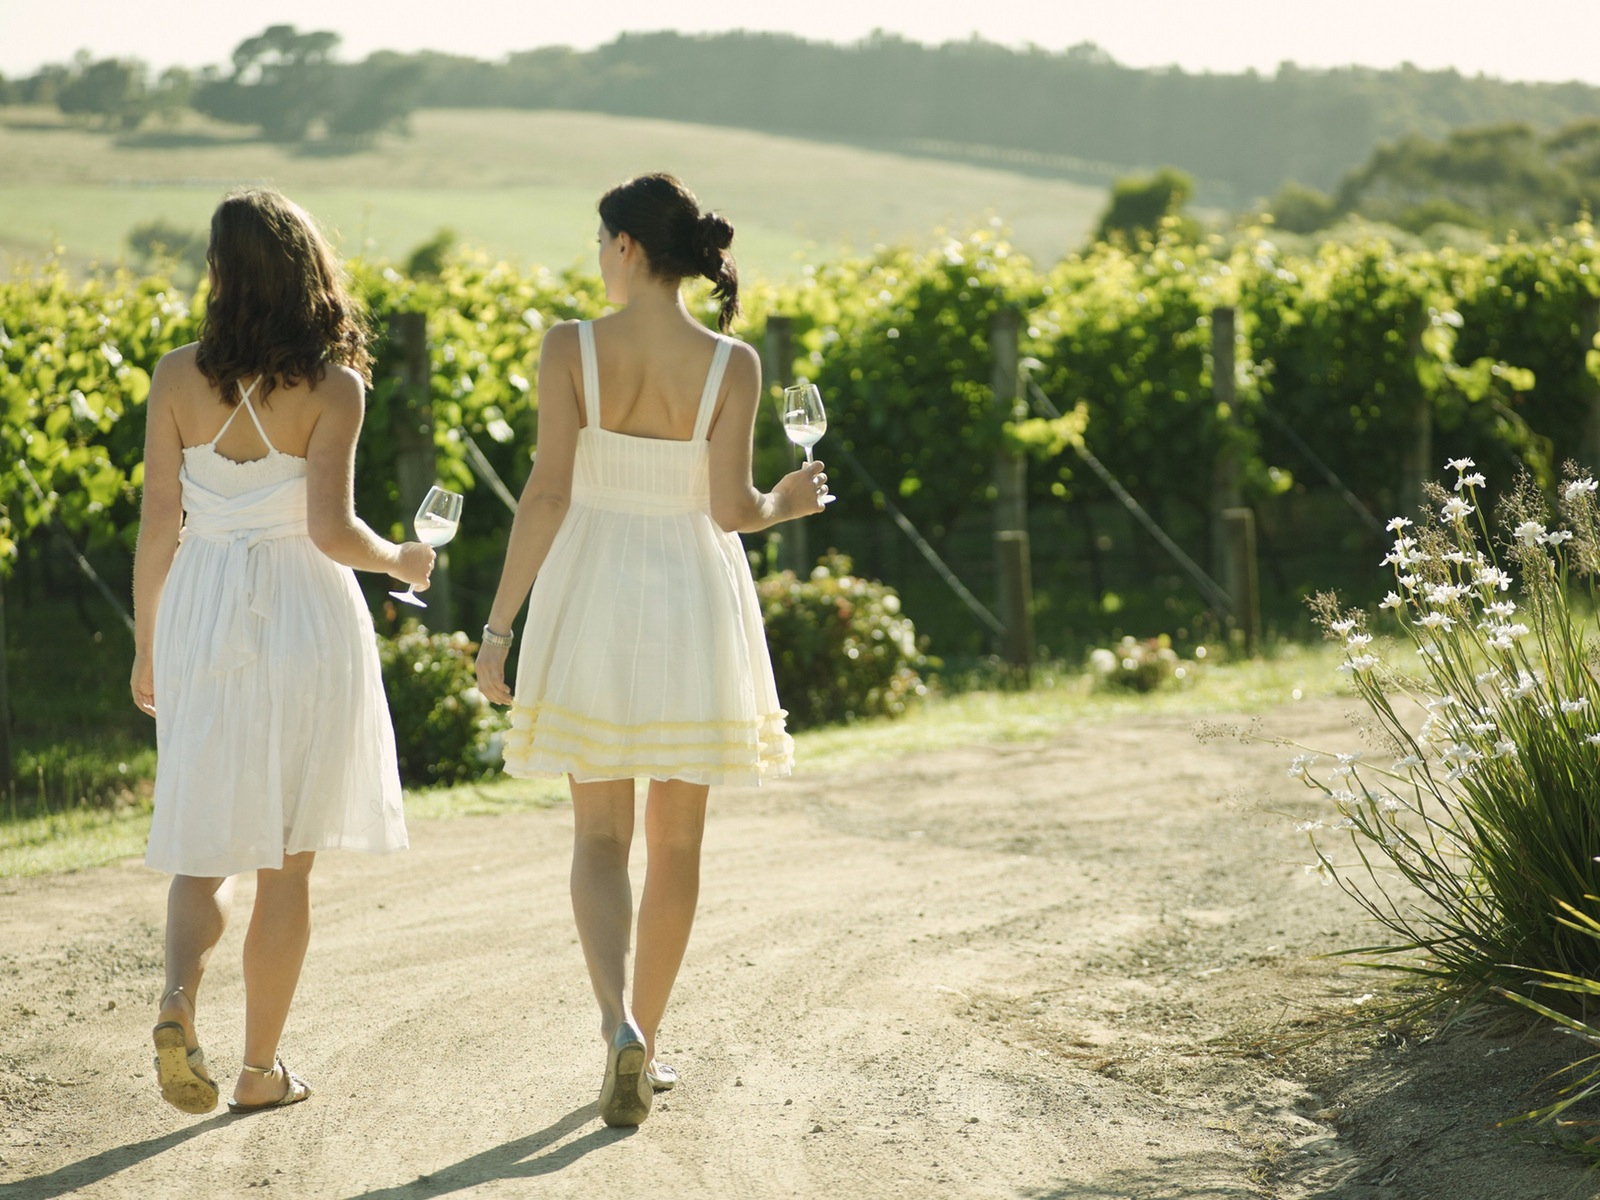 Mornington Peninsula produce tours